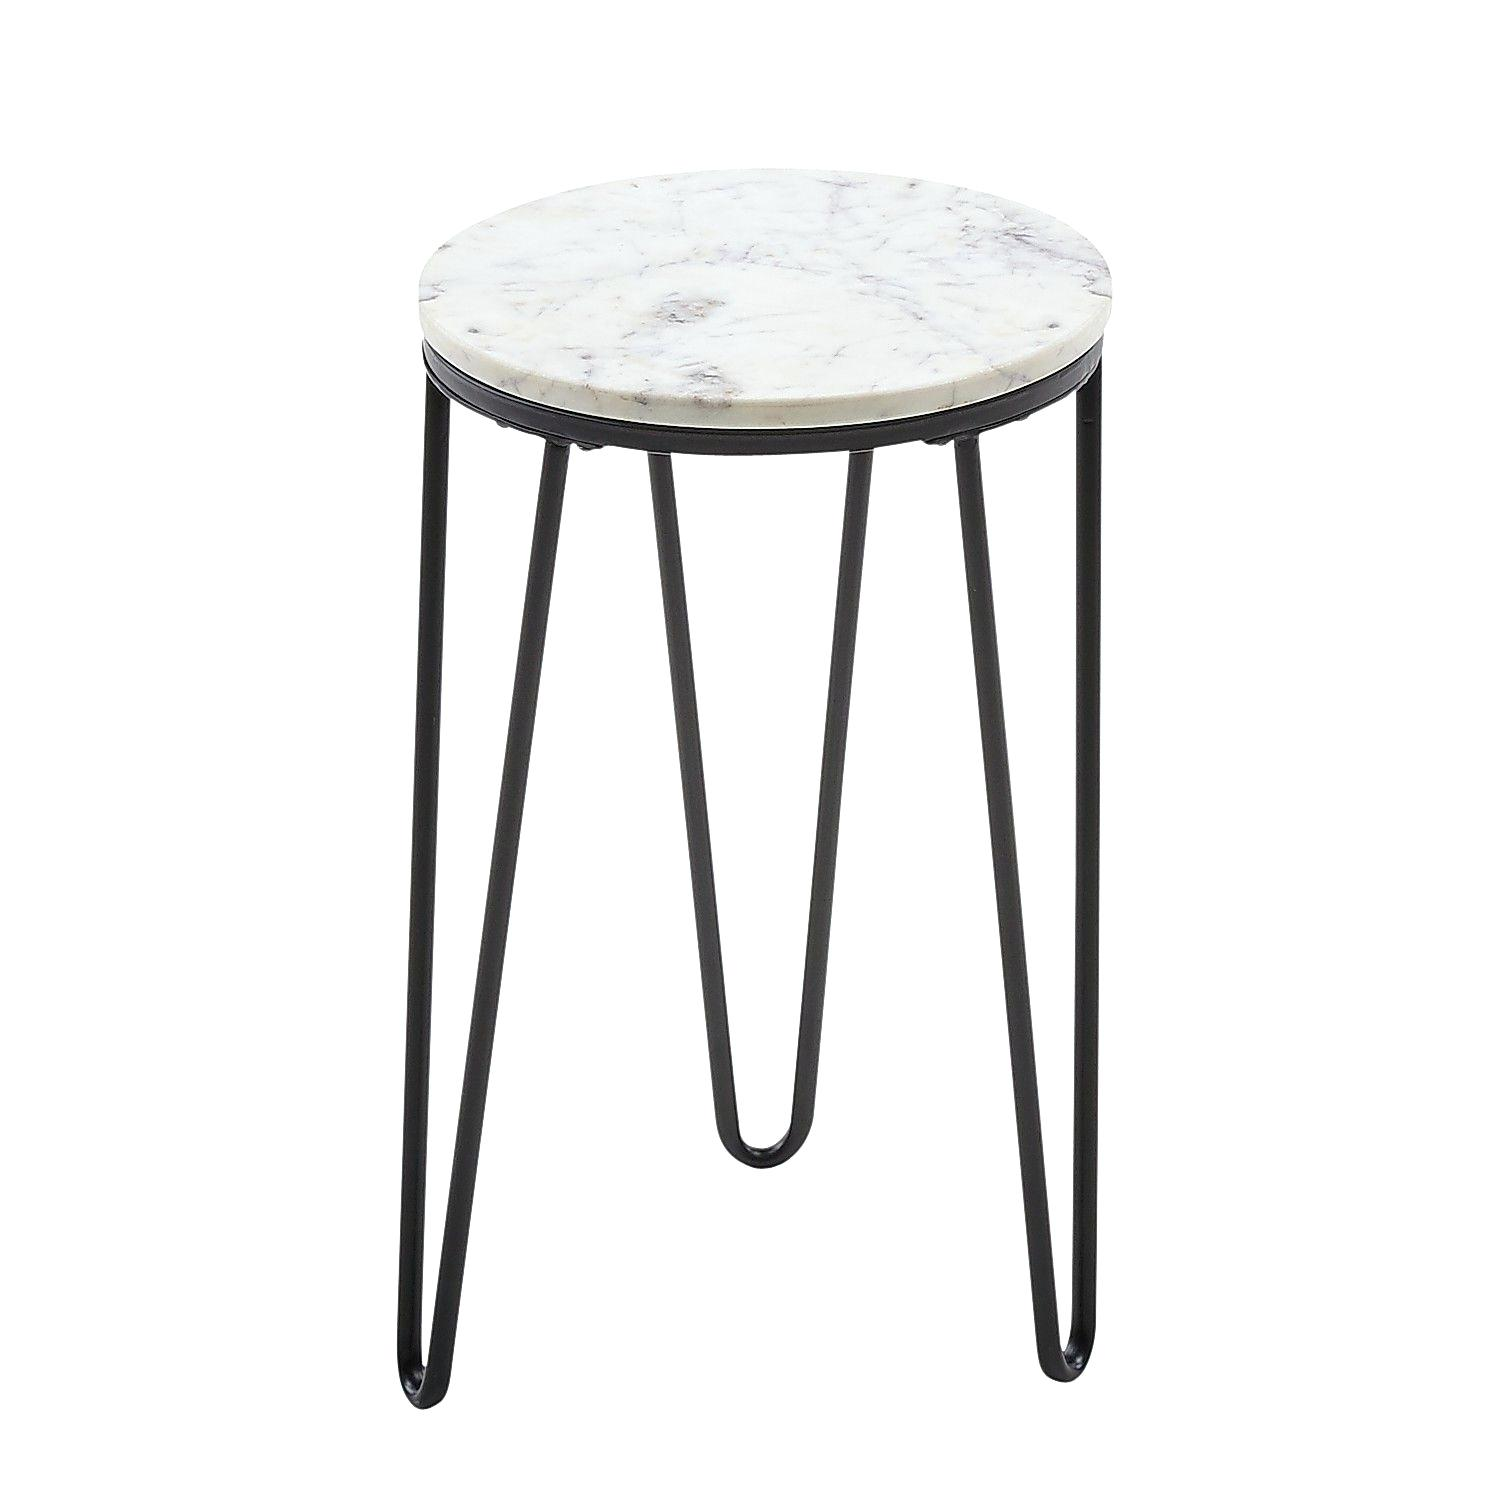 mid mod gray accent table zoom pier tables kenzie save this item kirklands wall decor baby scale target small silver lamps buffet cabinet console mirrors half moon square nesting